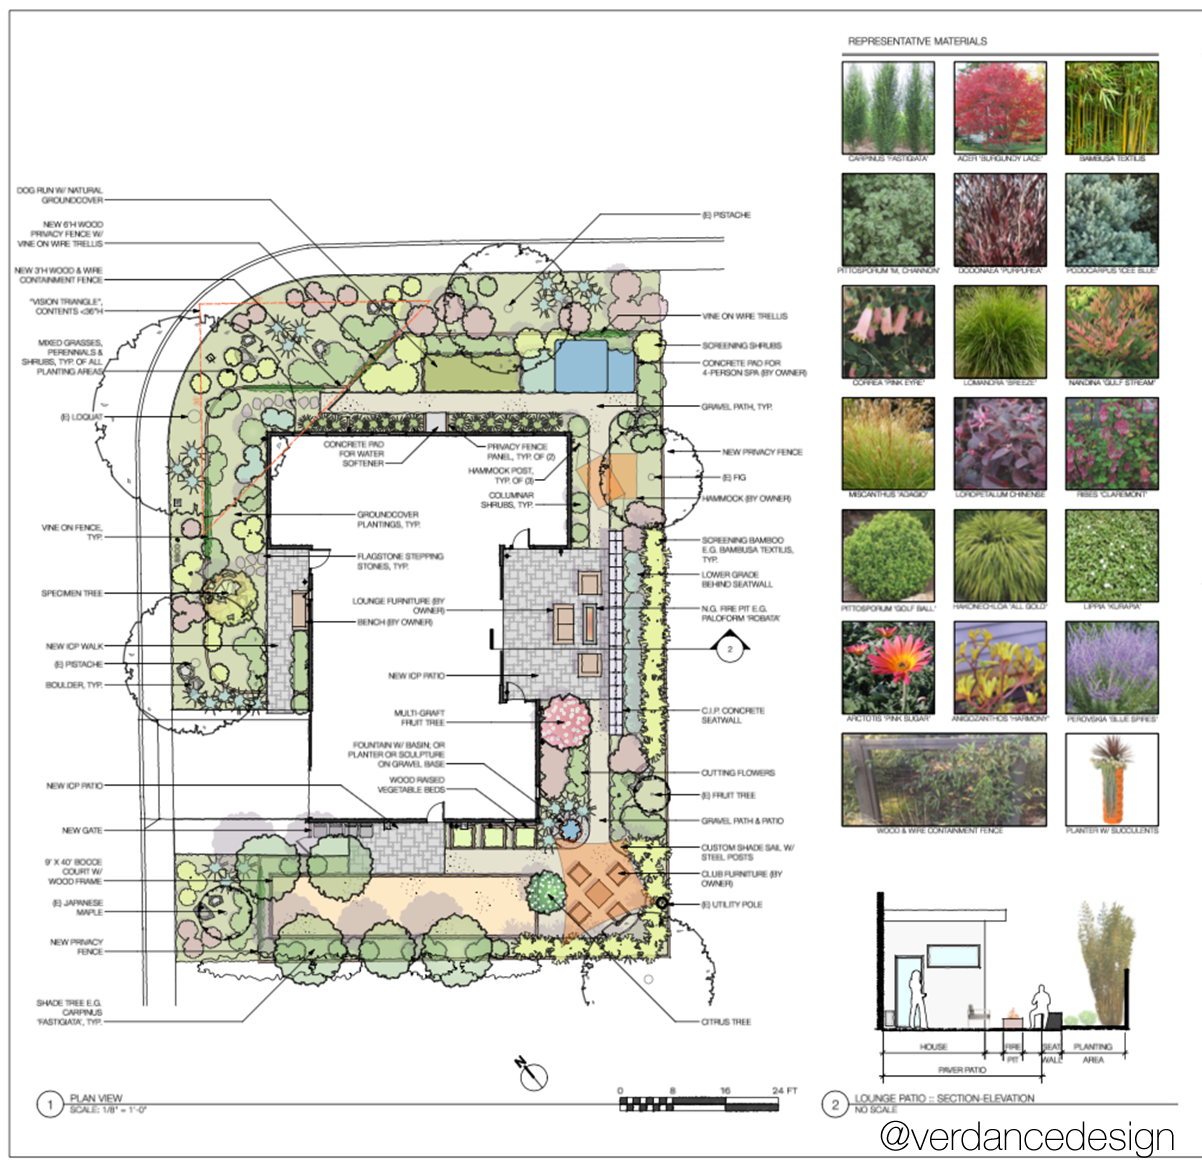 Beautifully detailed graphics promise beautifully detailed gardens.